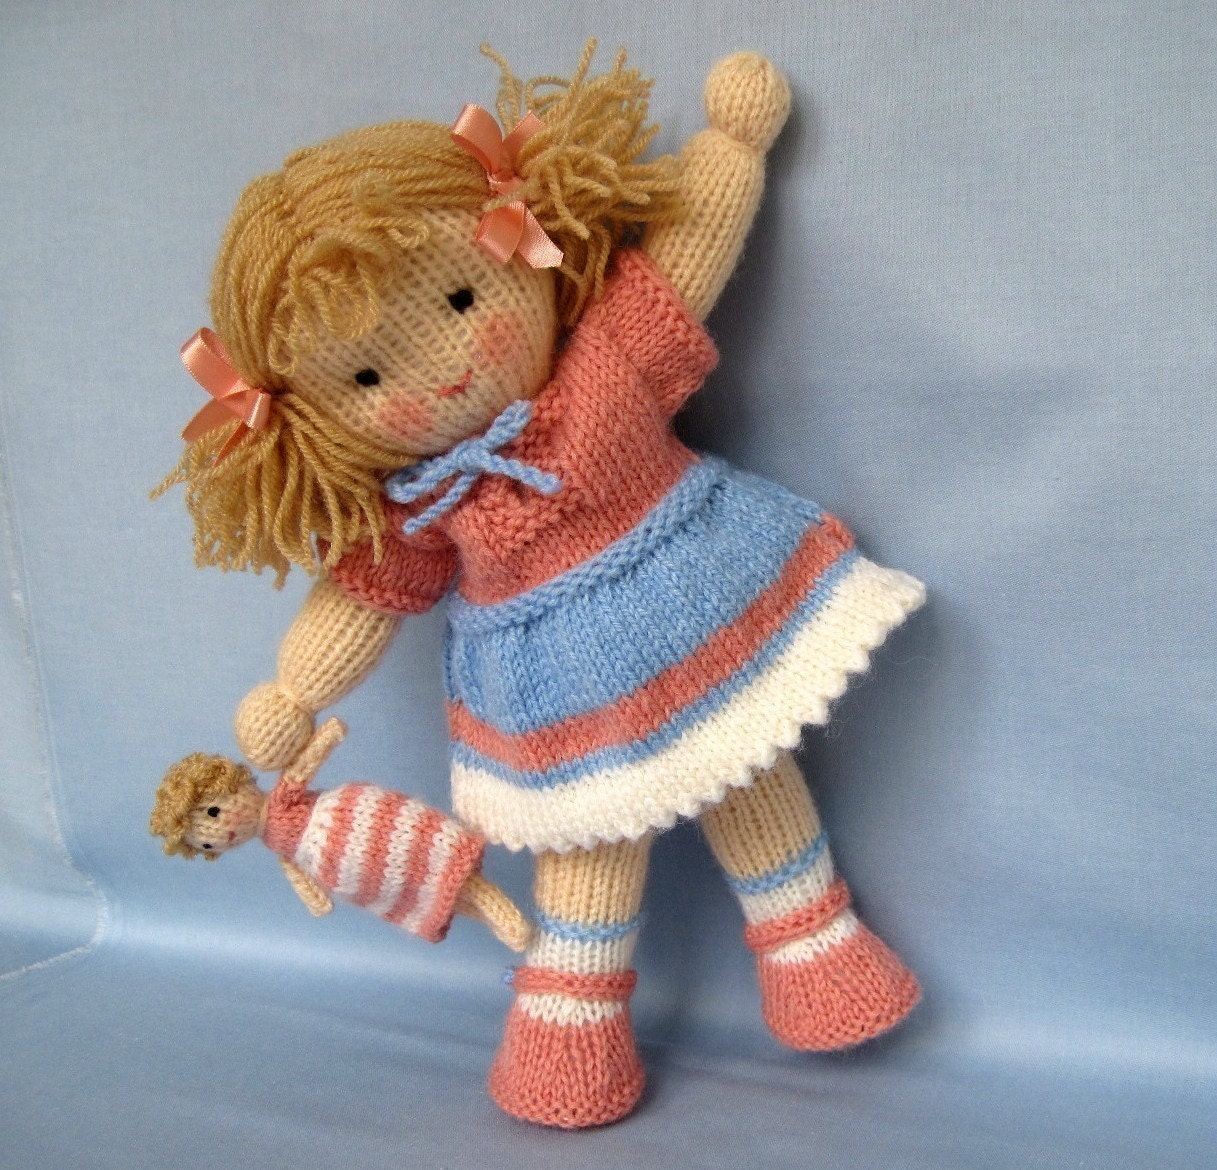 Lulu and little doll knitting pattern INSTANT DOWNLOAD